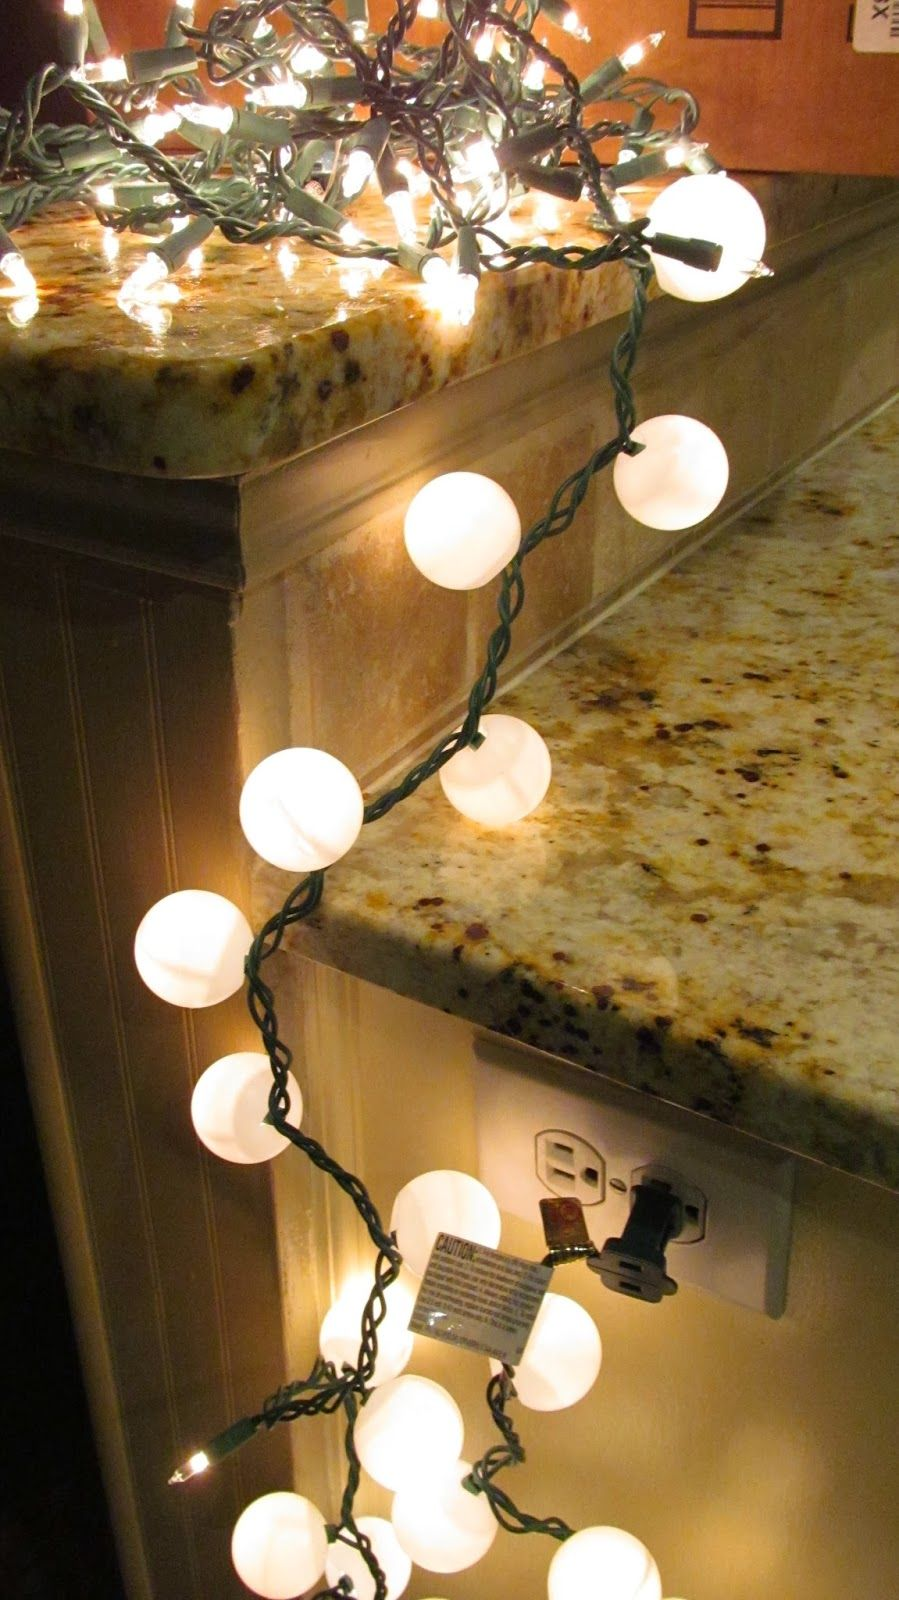 ping pong lighting. Ping Pong Balls - I\u0027ll Use The Lights With White Strand Instead Of Green Though. Thanks For Idea, Gayla! Lighting A